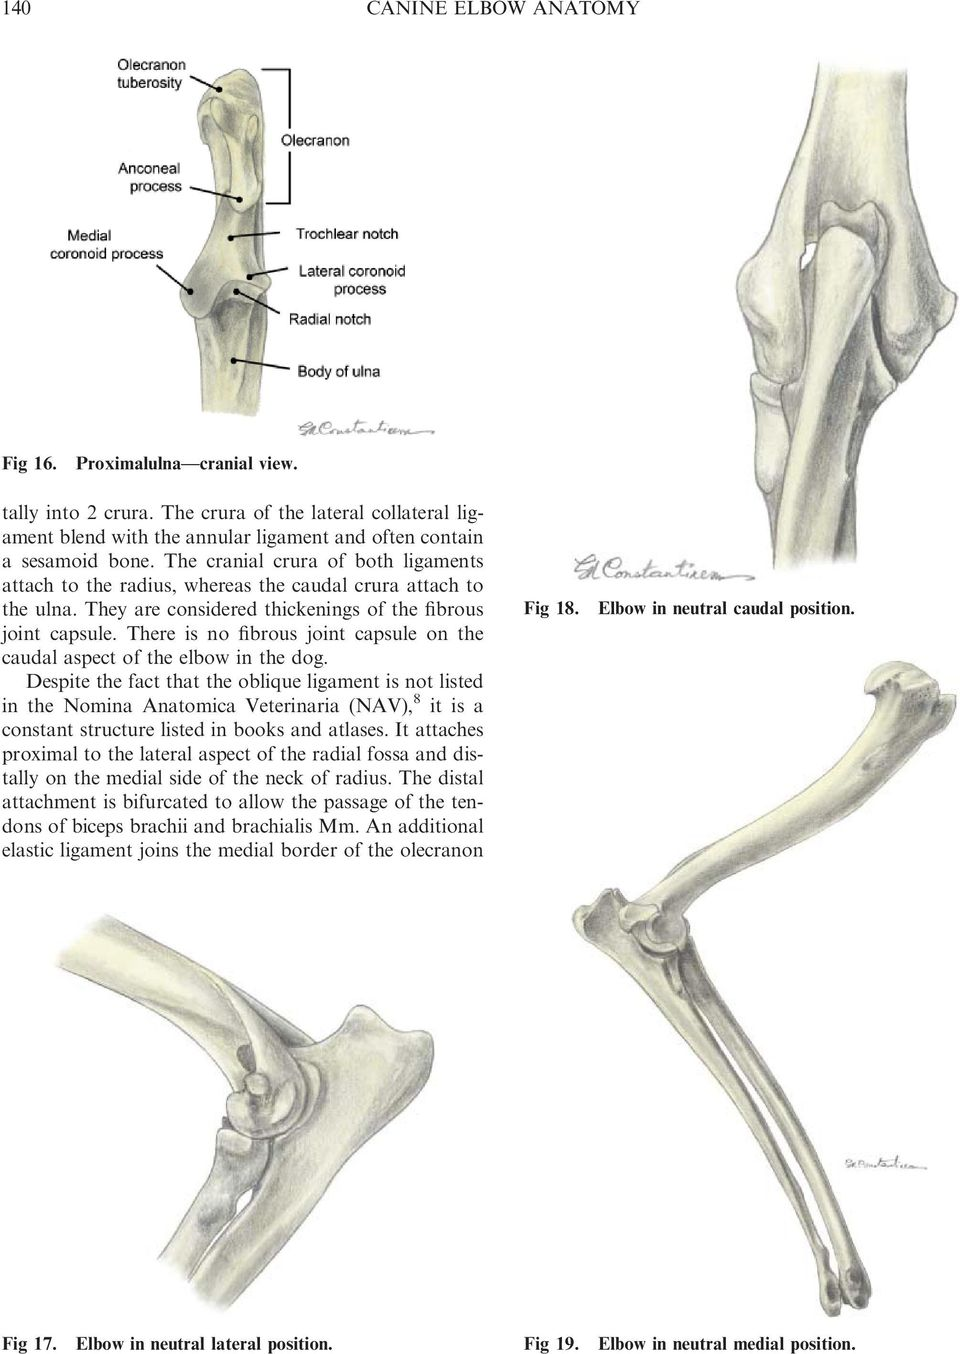 There is no fibrous joint capsule on the caudal aspect of the elbow in the dog.